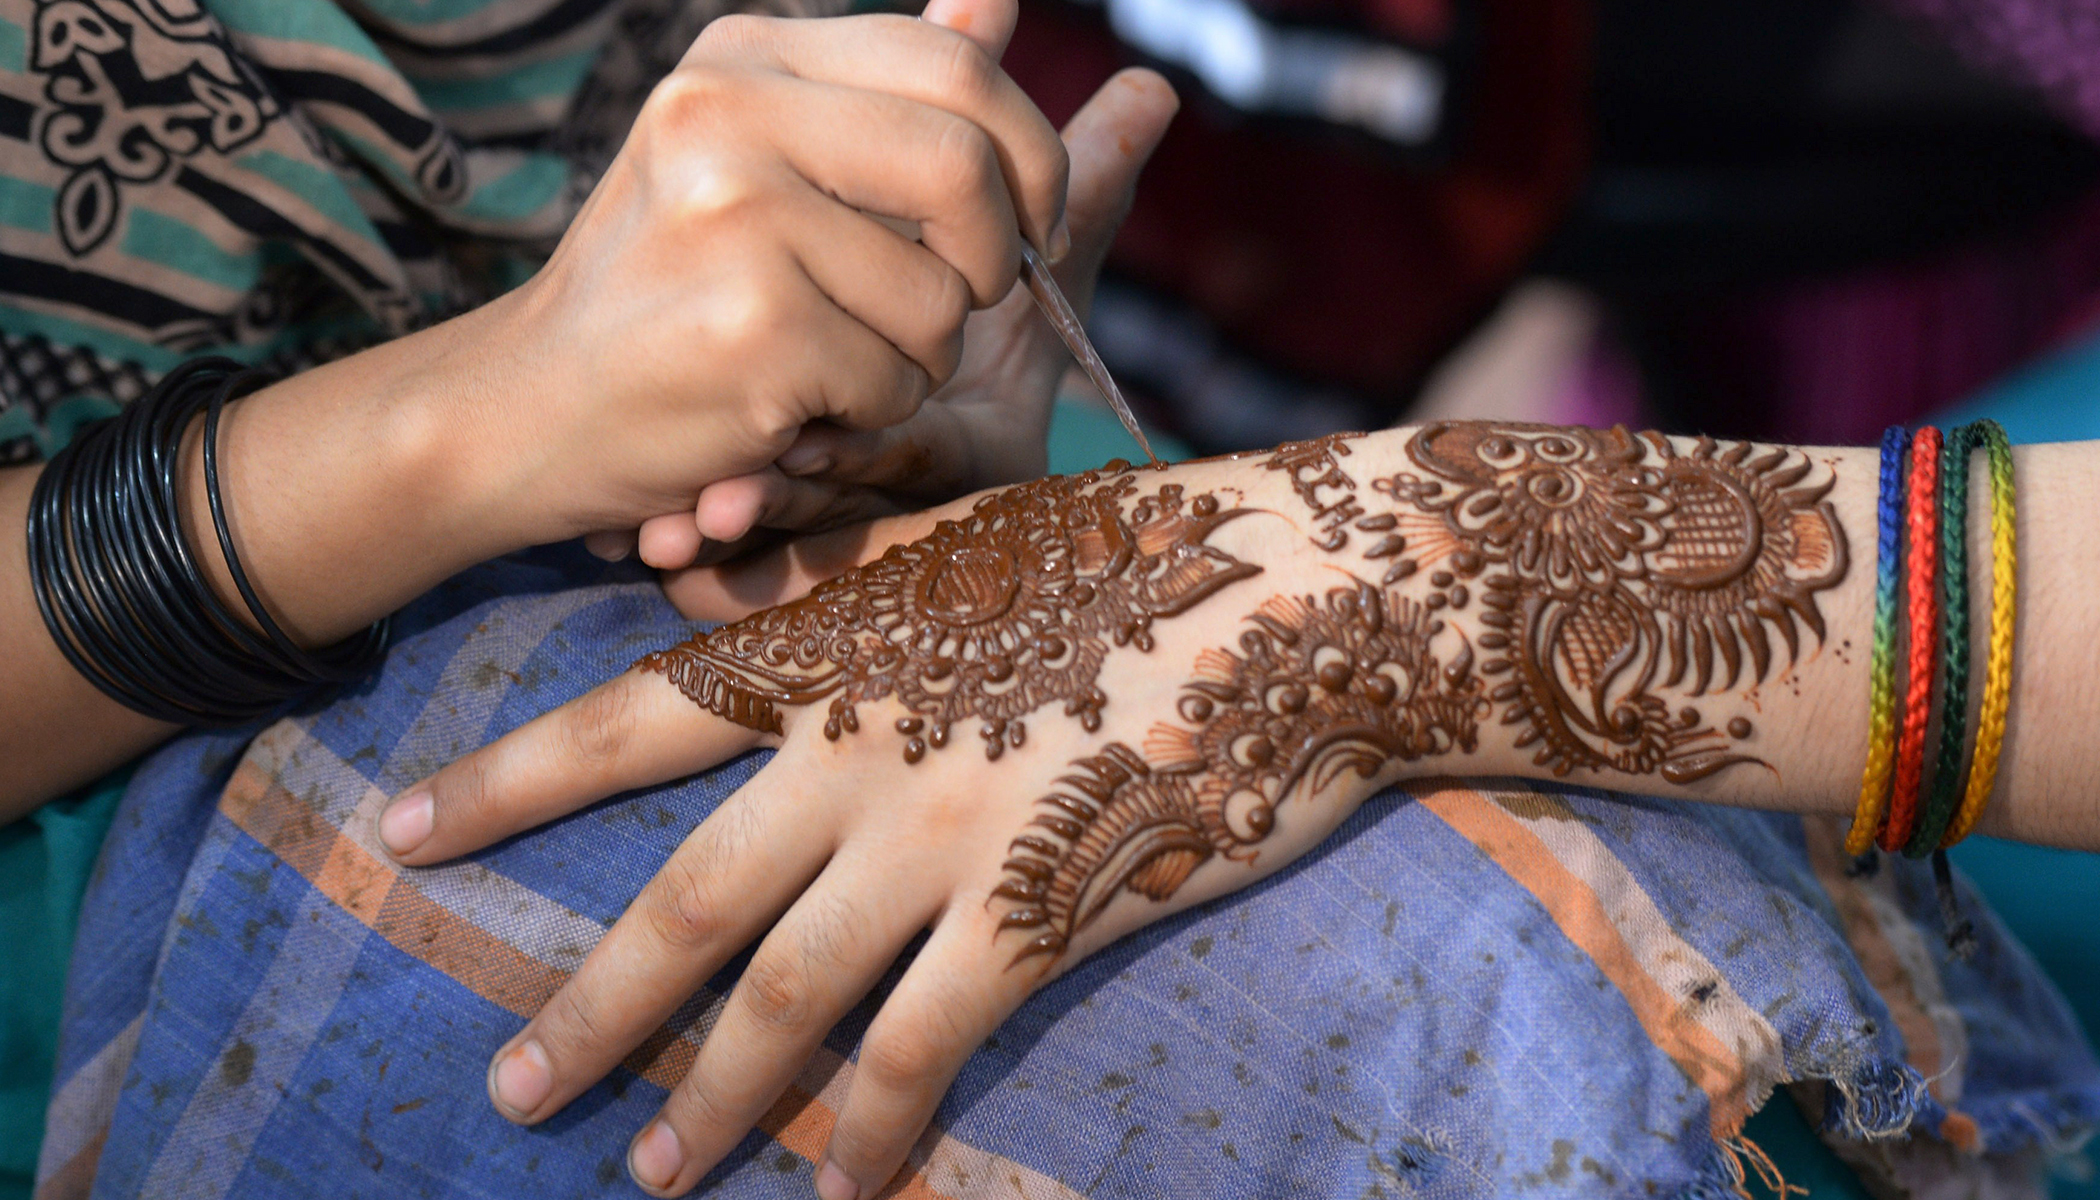 f200a505a Little Girl 'Potentially Scarred for Life' After Black Henna Tattoo Erupted  in Blisters